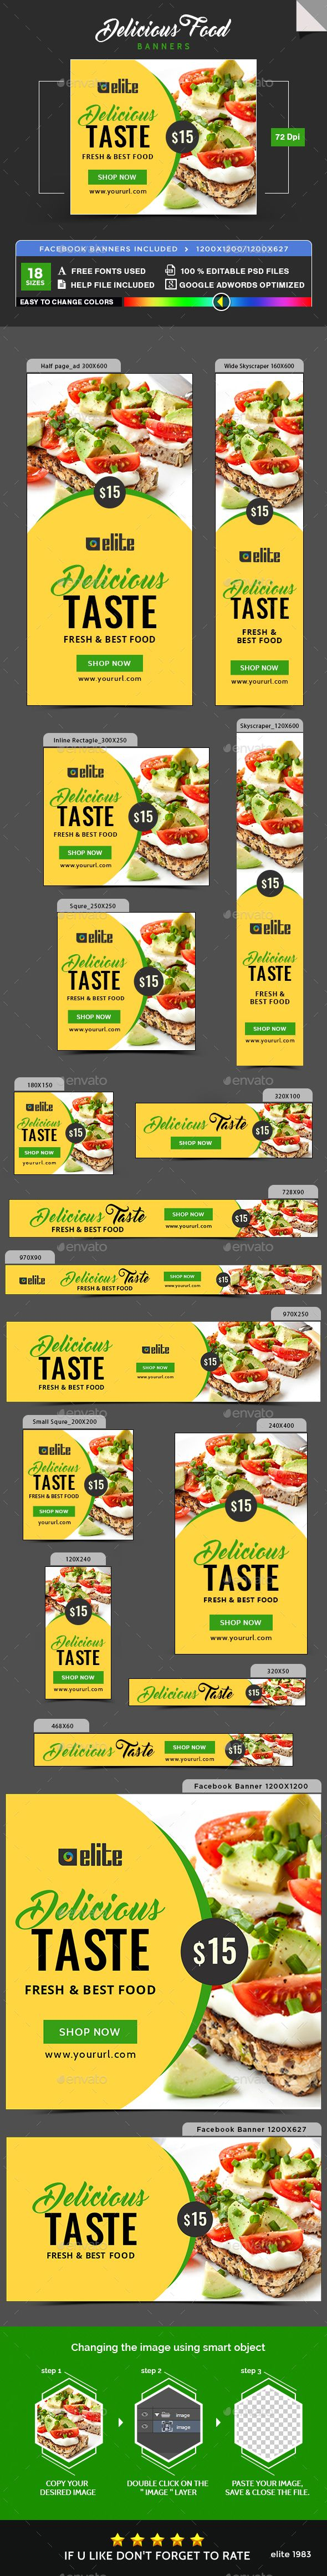 Design banner template - Delicious Food Banners